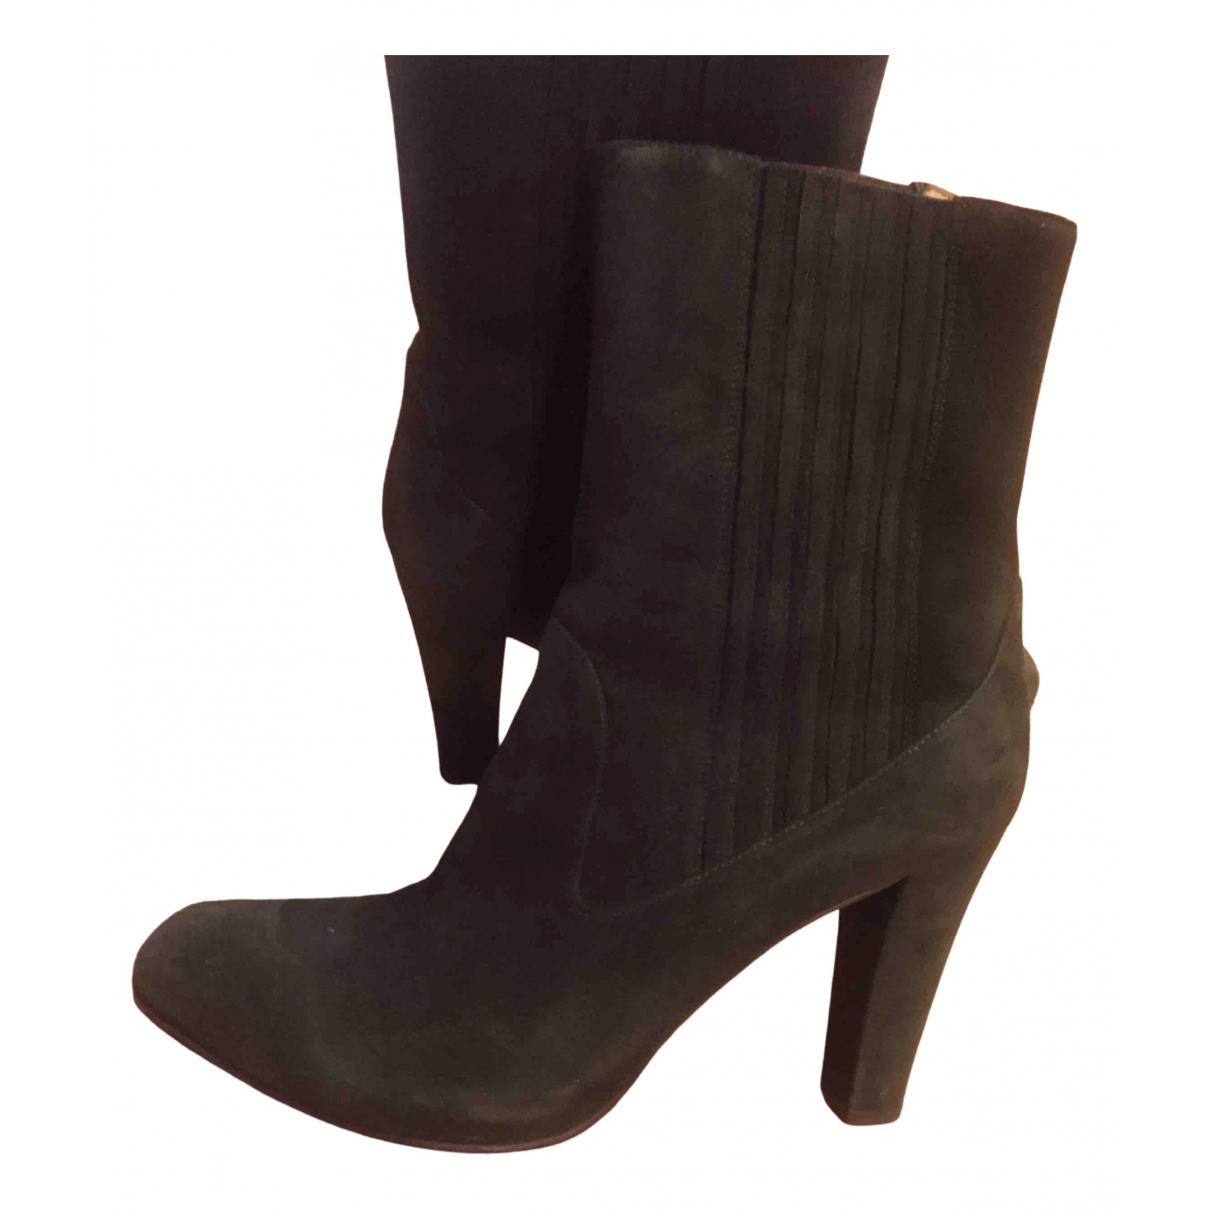 Fratelli Rossetti N Green Suede Ankle boots for Women 40 EU